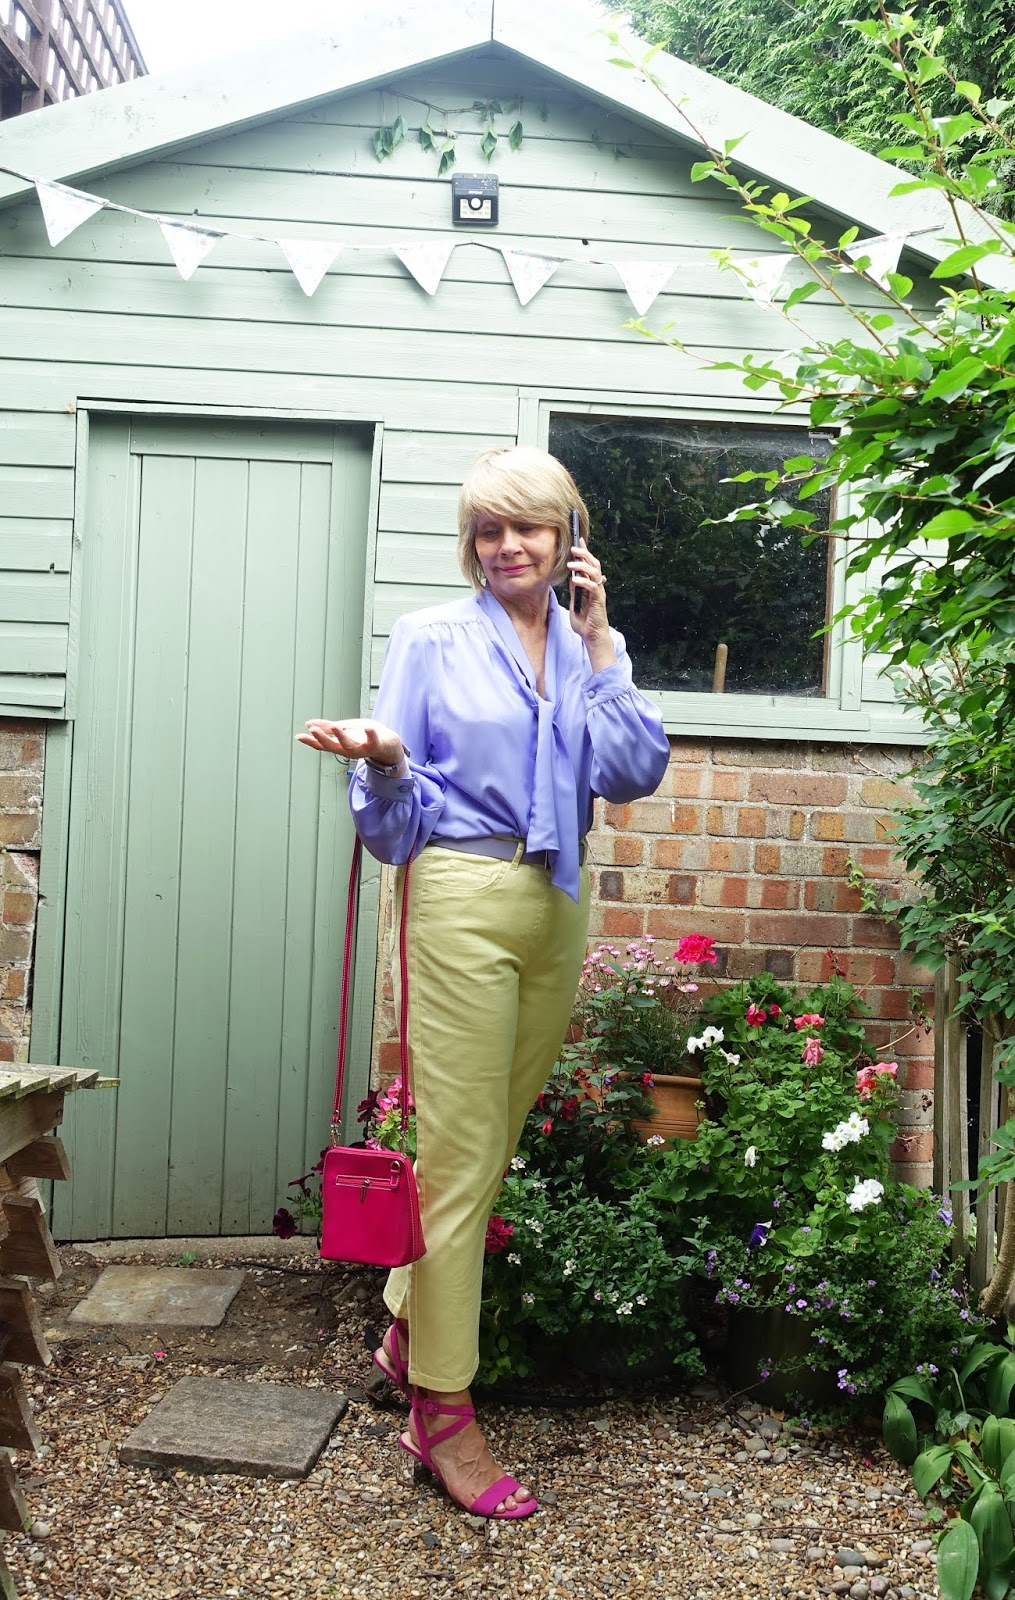 Over 50s blogger Gail Hanlon from Is This Mutton in a lilac blouse with yellow trousers and pink accessories